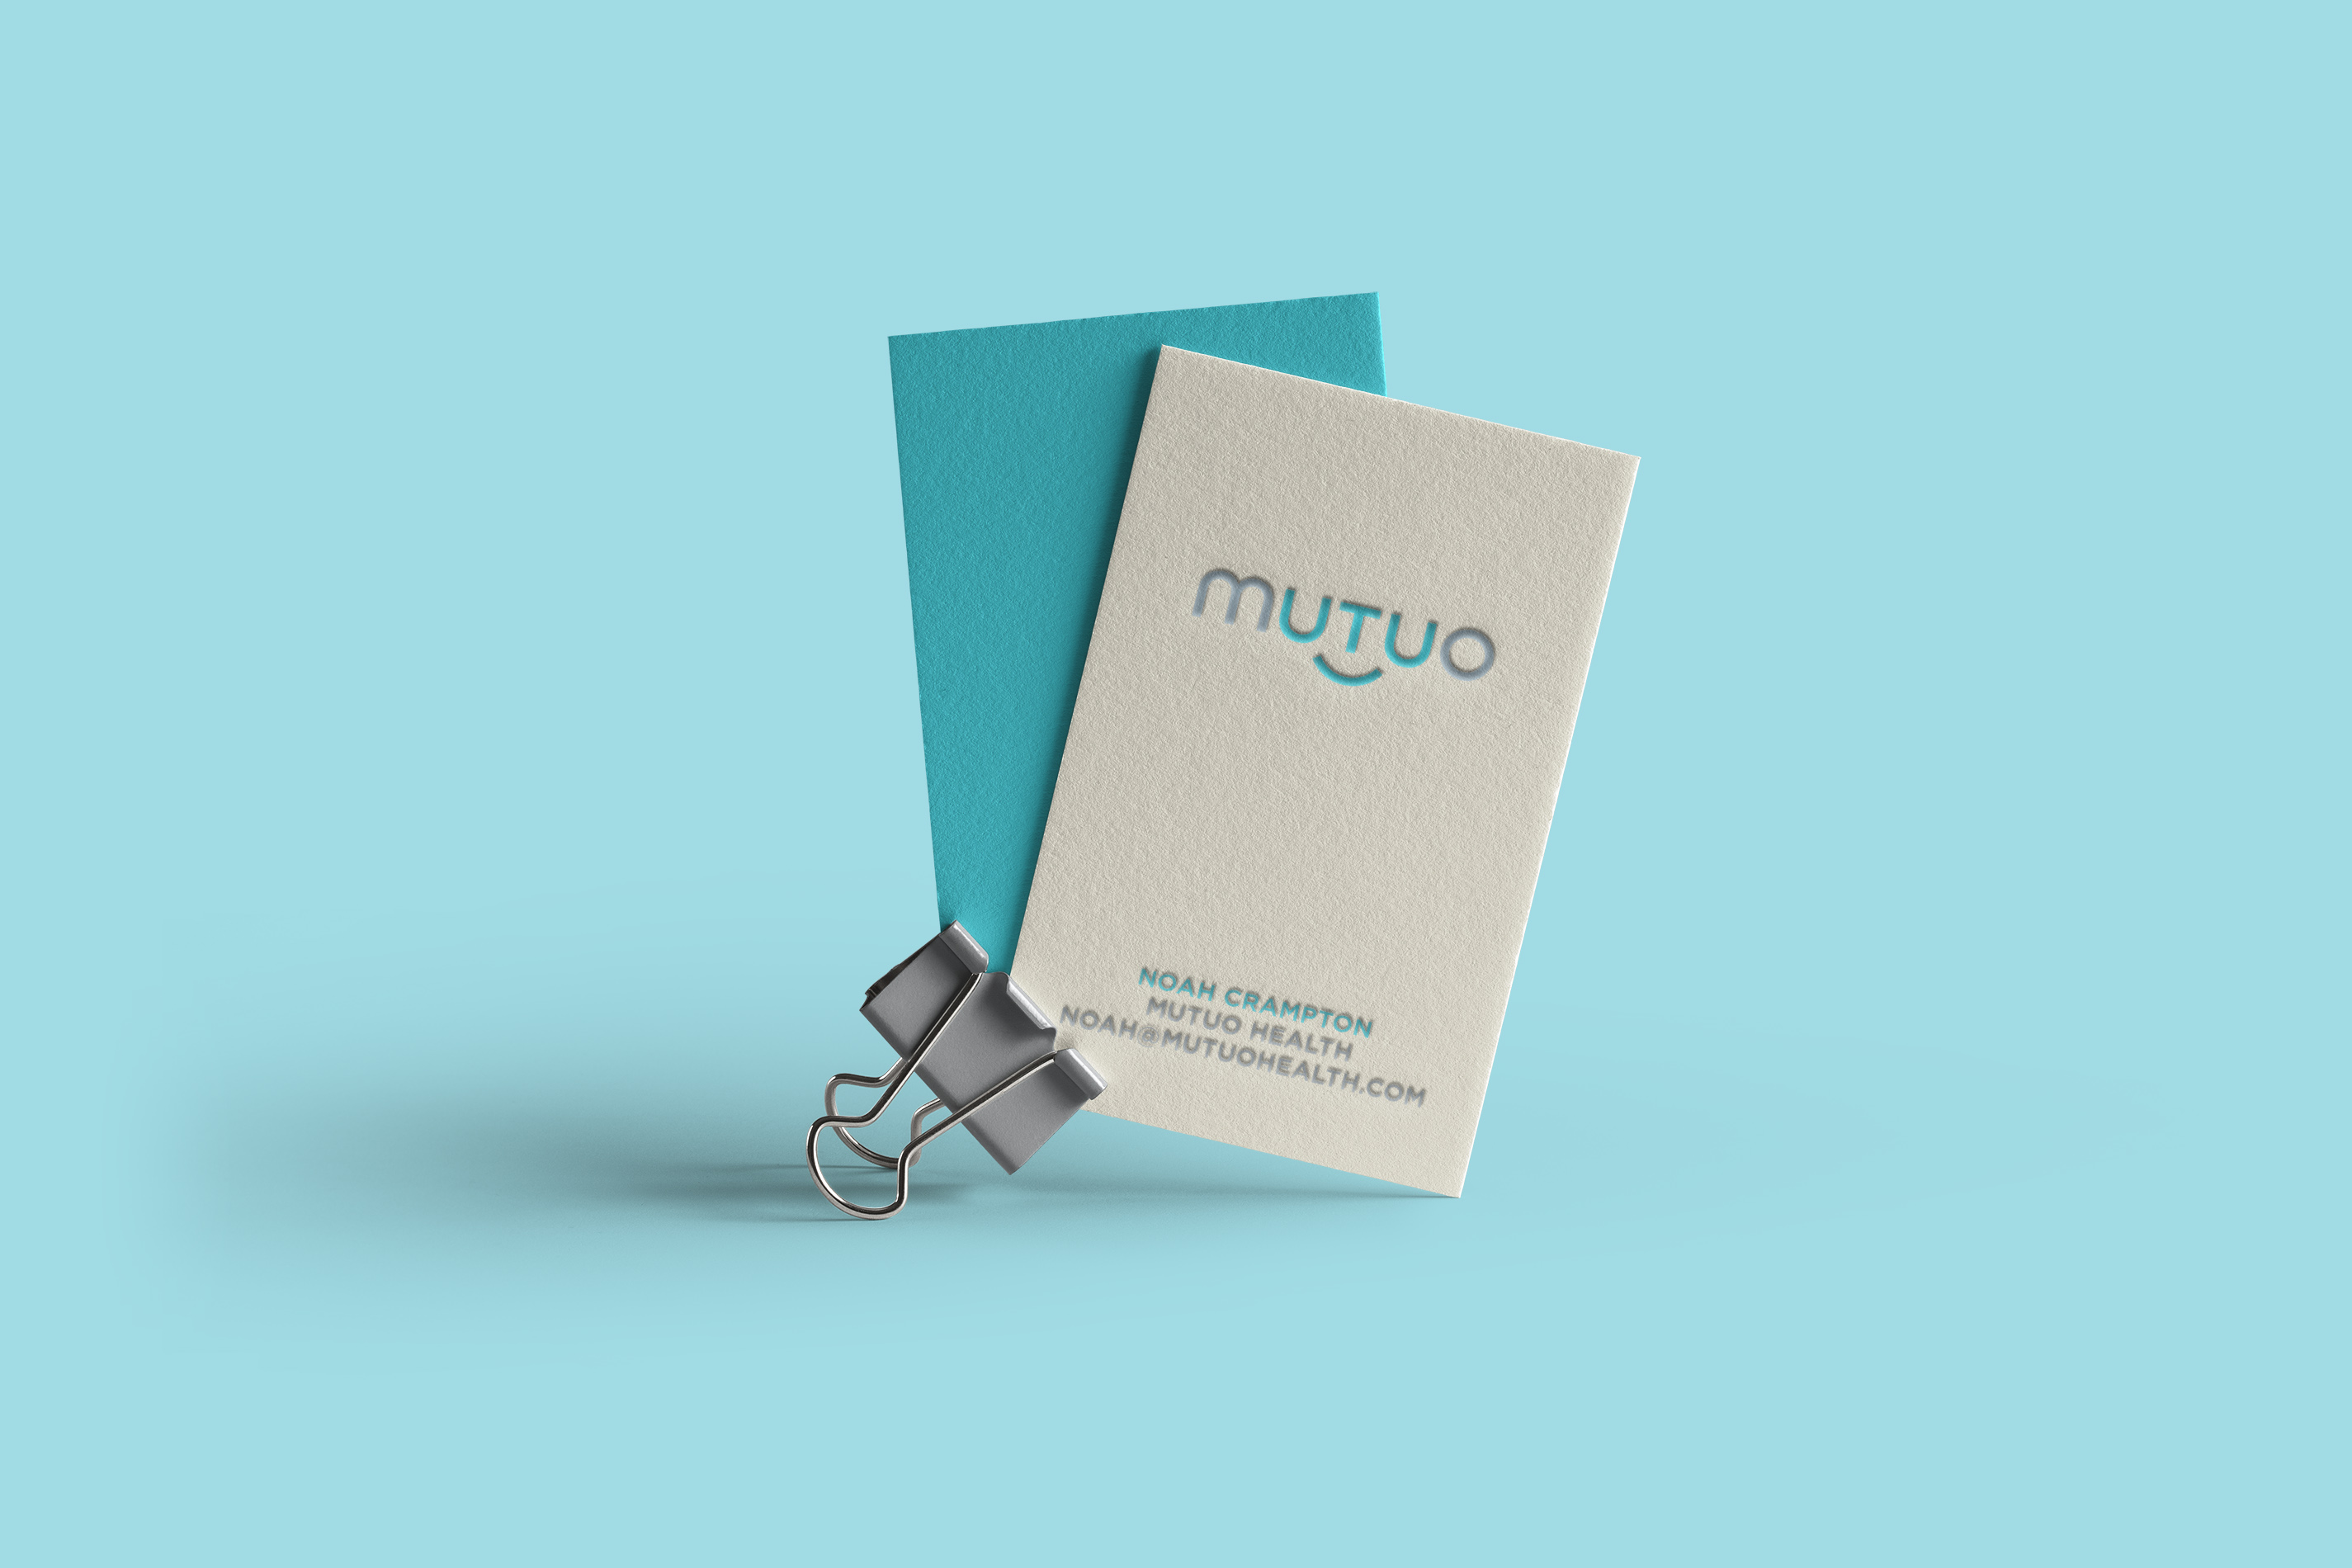 Mutuo_BusinessCard